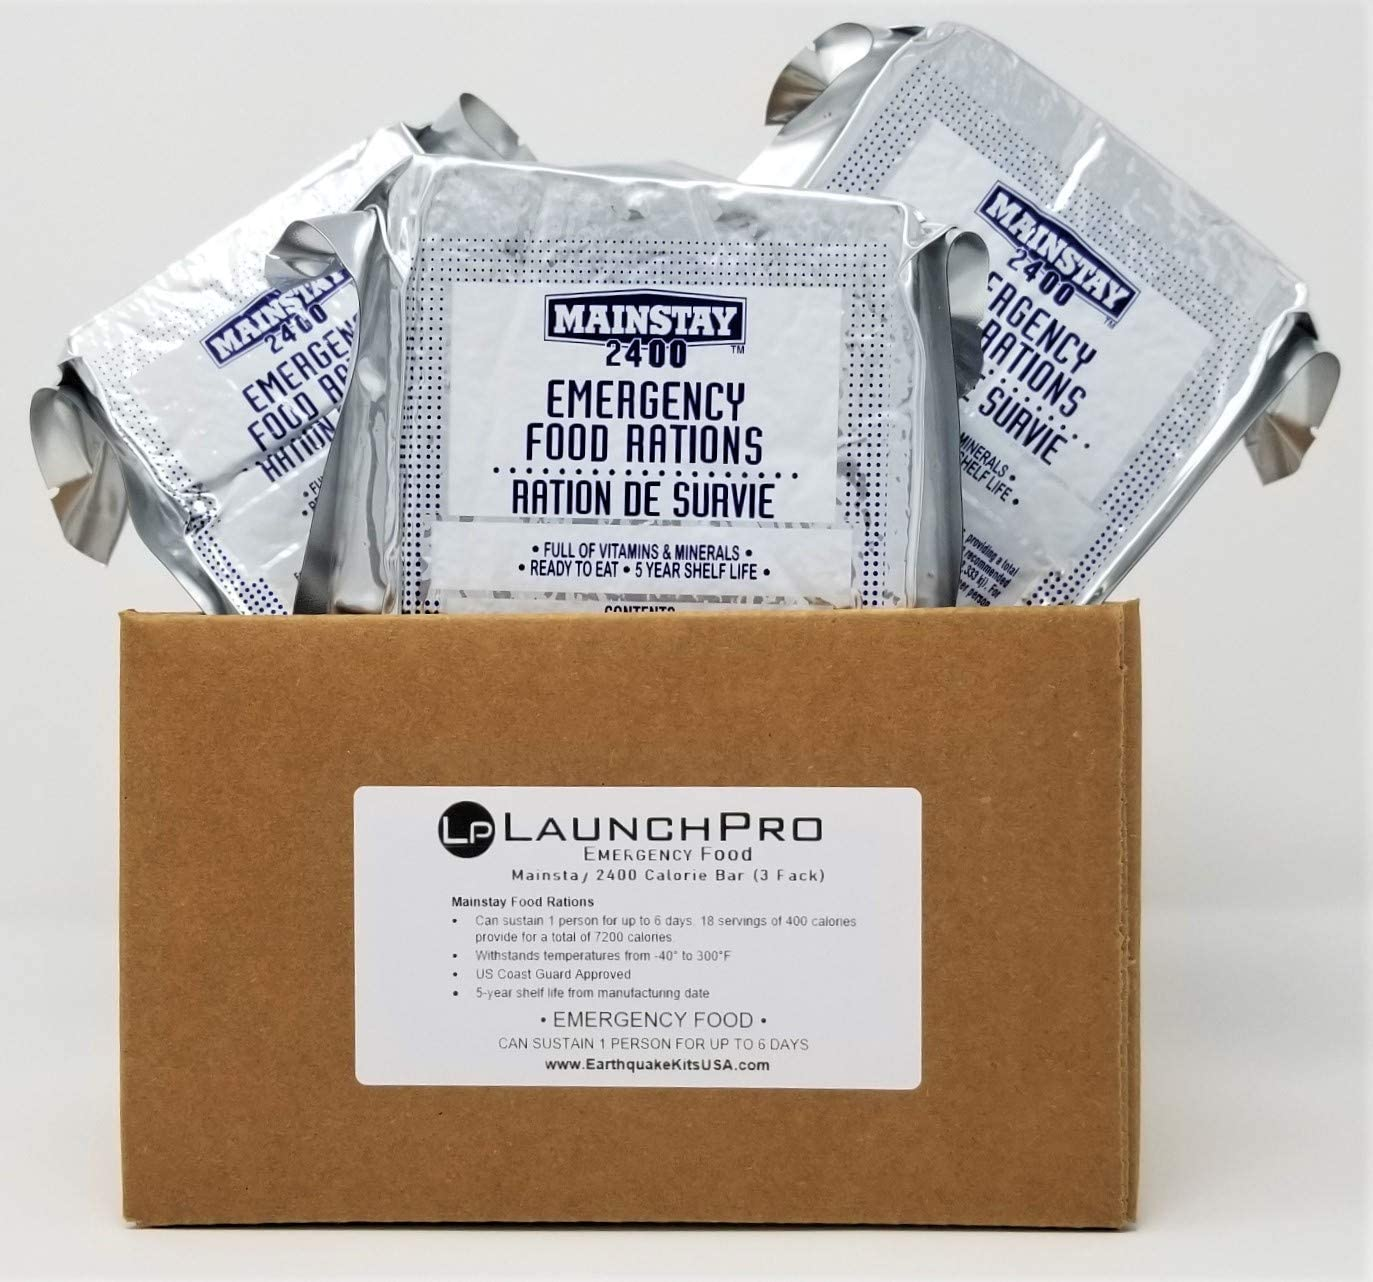 LaunchPro Emergency Food Rations 2400 Calorie Food Bars (Pack of 3)